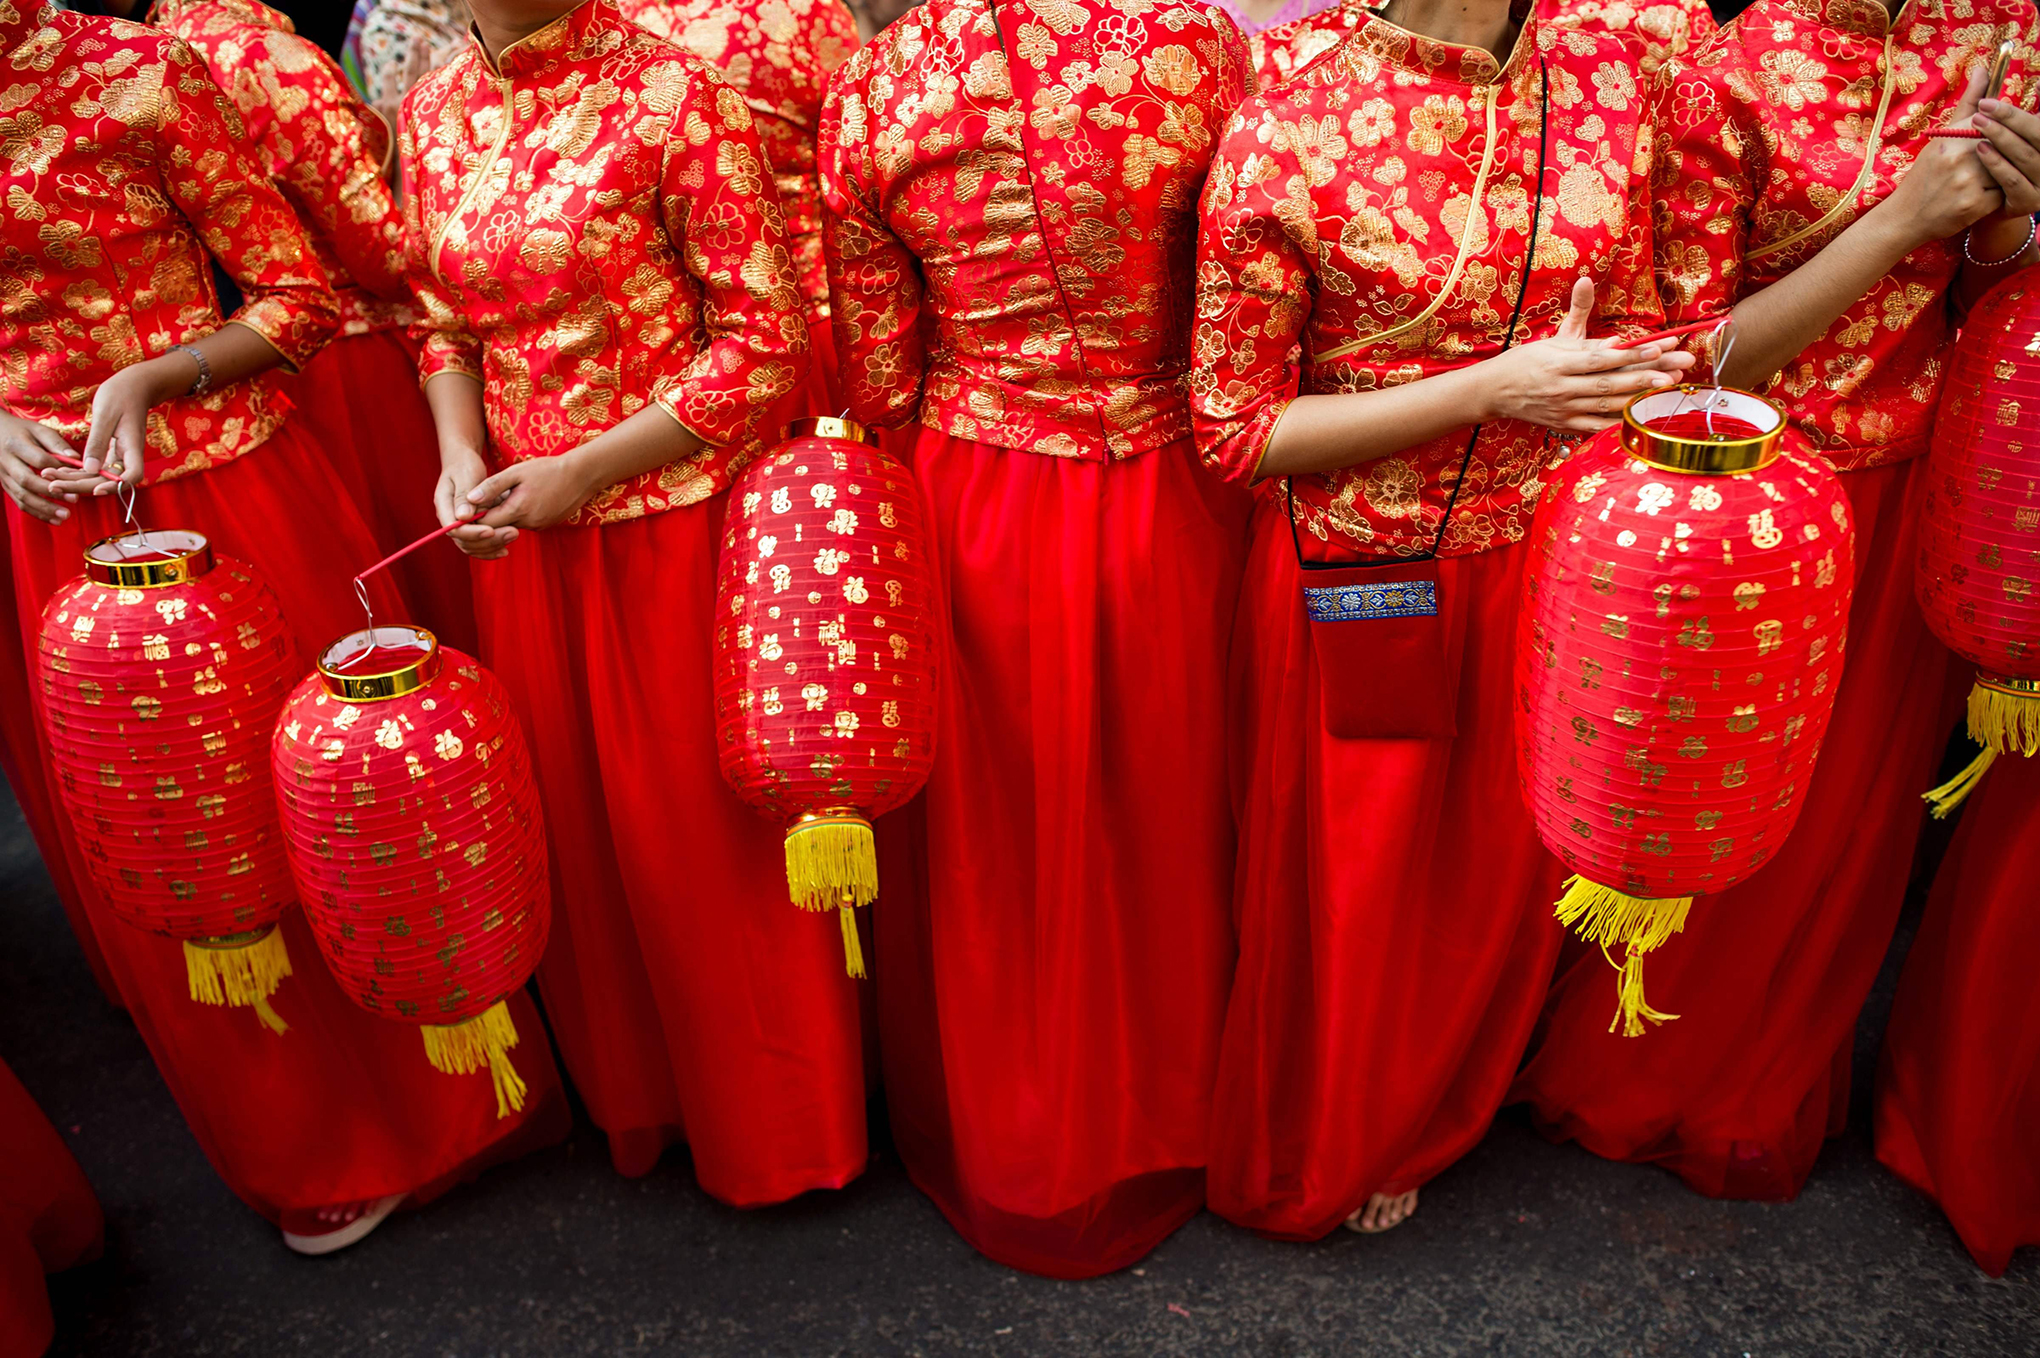 Young women in traditional Chinese costumes hold lanterns as they take part in celebrations marking the first day of the Lunar New Year in Yangon's Chinatown district on Feb. 16, 2018.